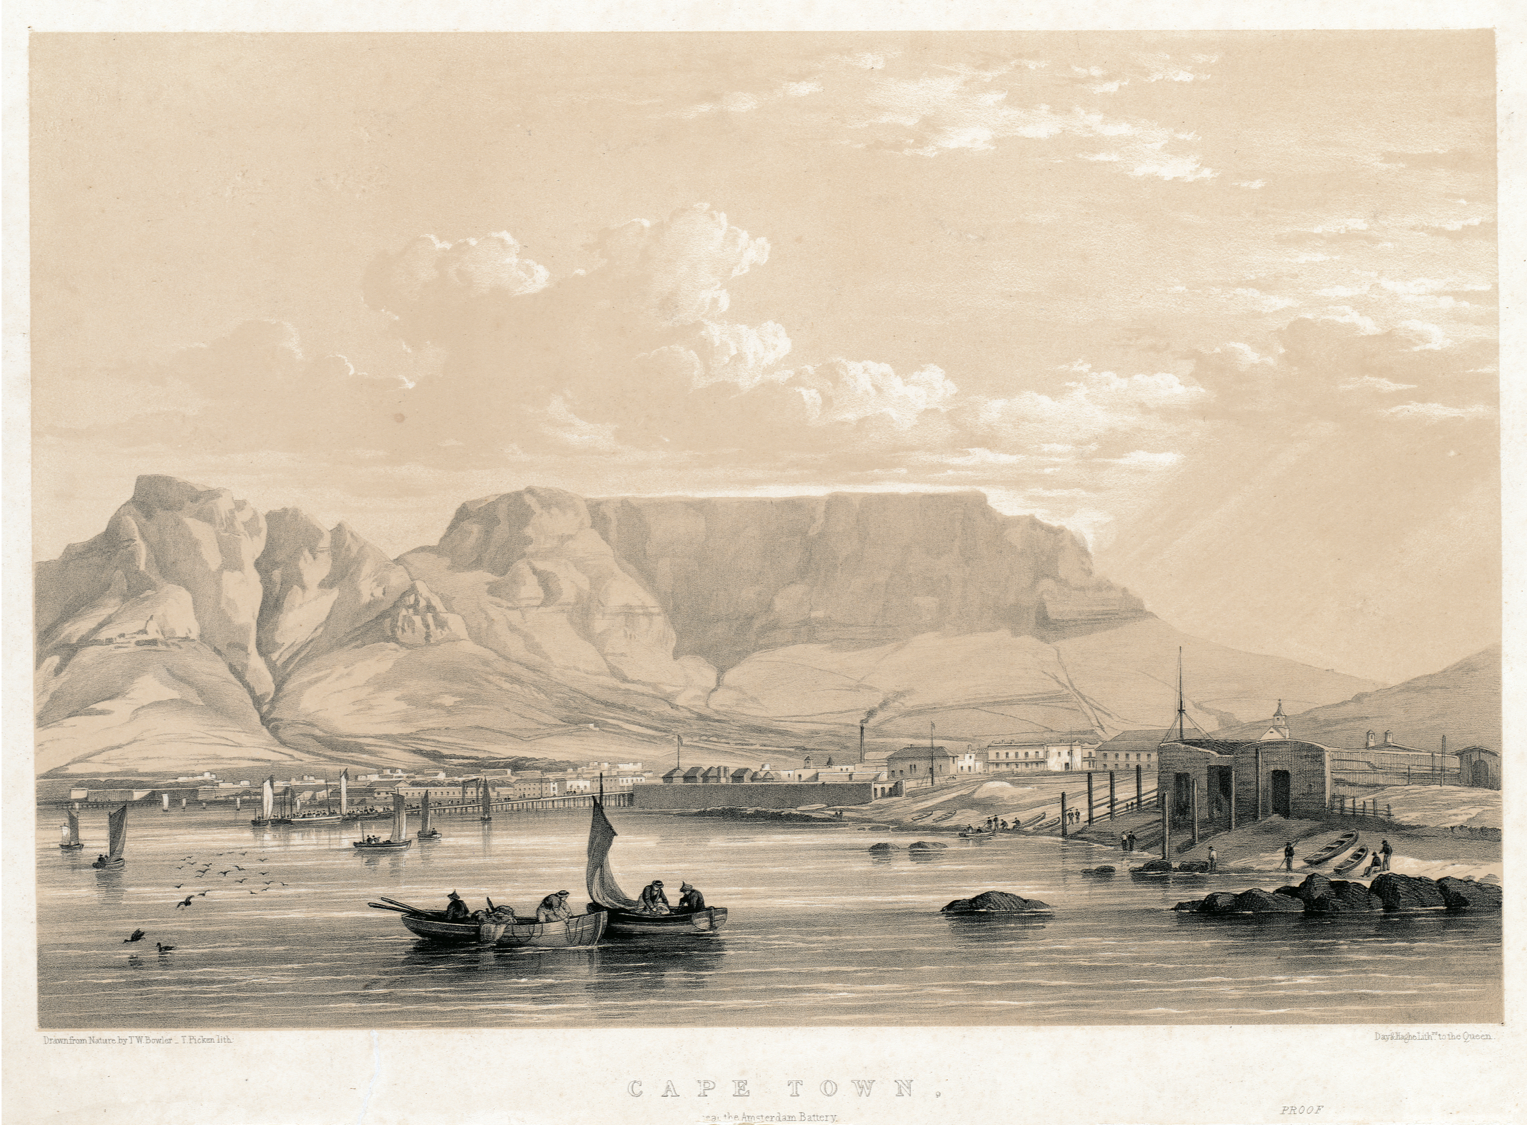 Cape Colony, Cape Town, Cape of Good Hope, South Africa, Amsterdam Battery